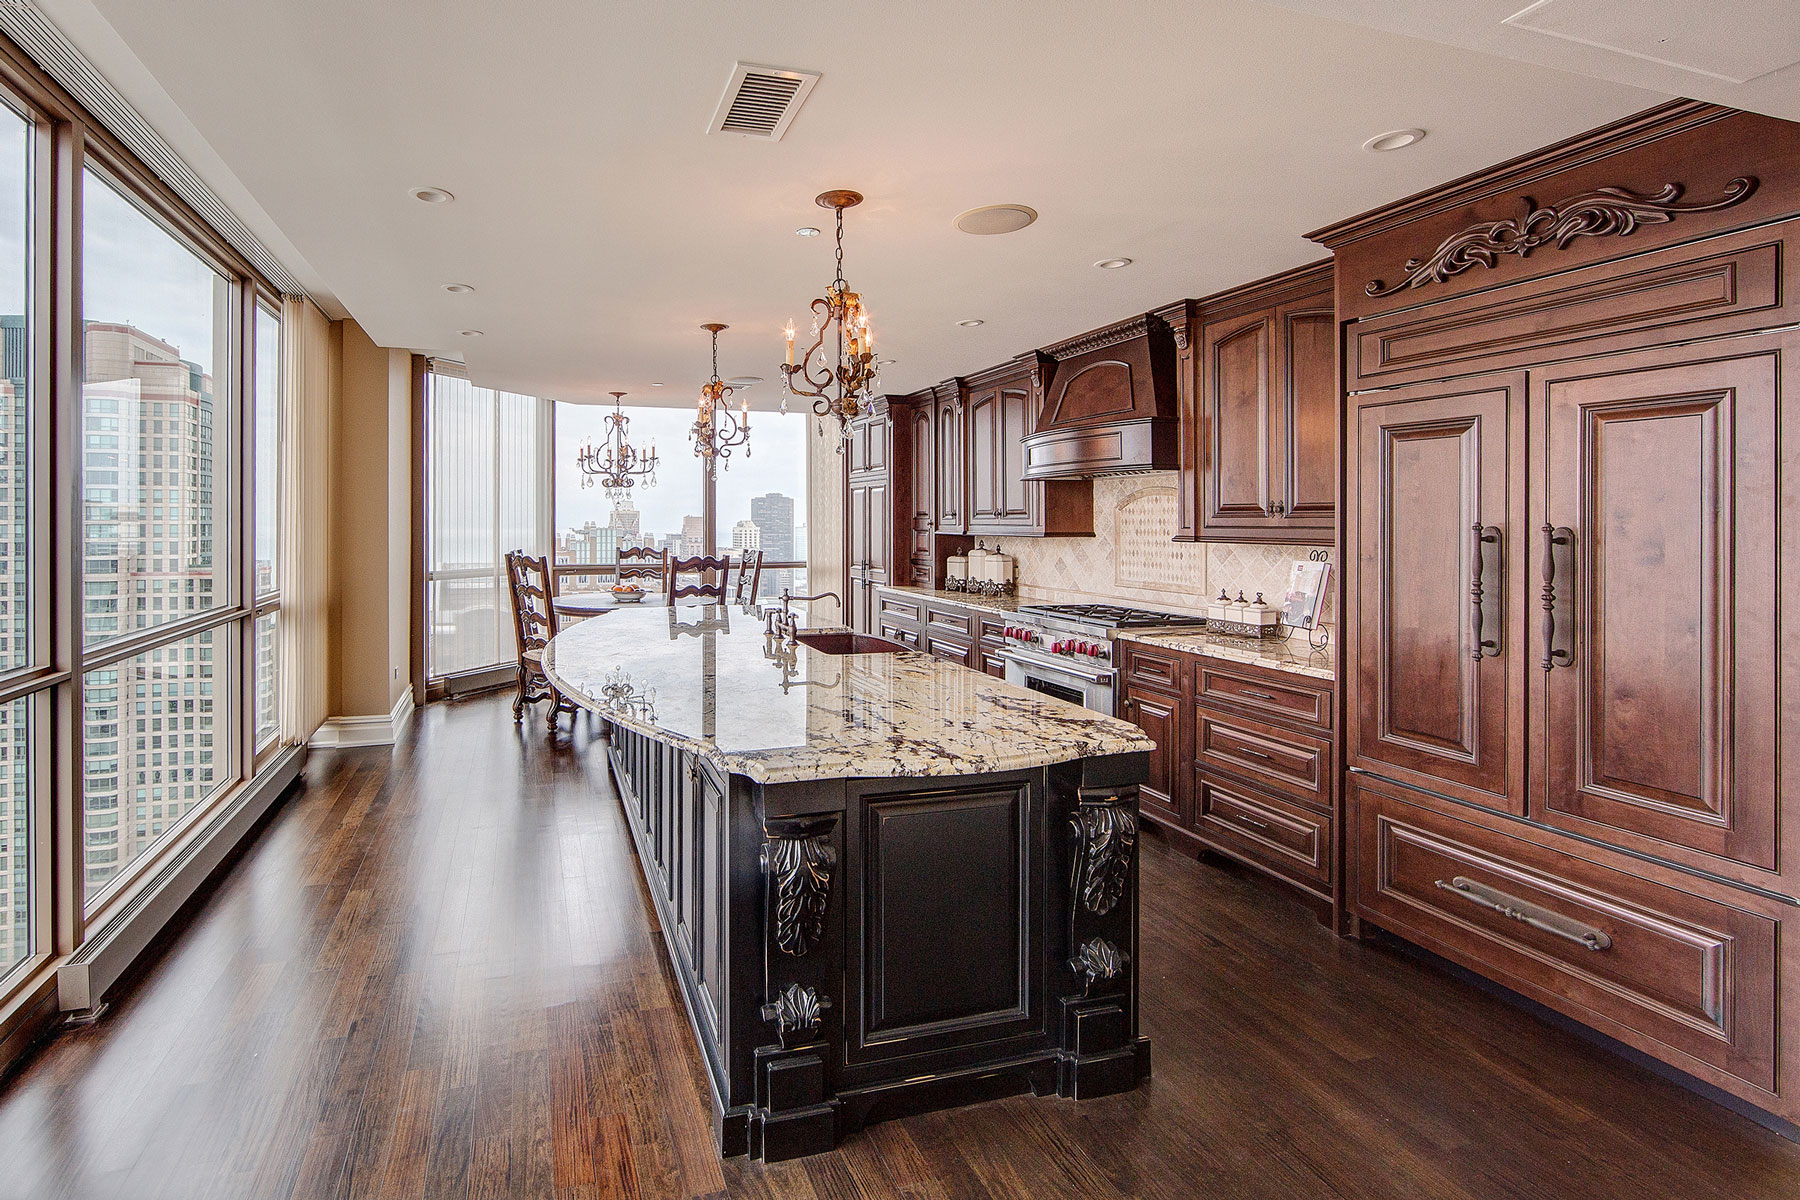 kitchen and bathroom remodeling kitchen remodeling chicago Chicago Condo Kitchen Remodel